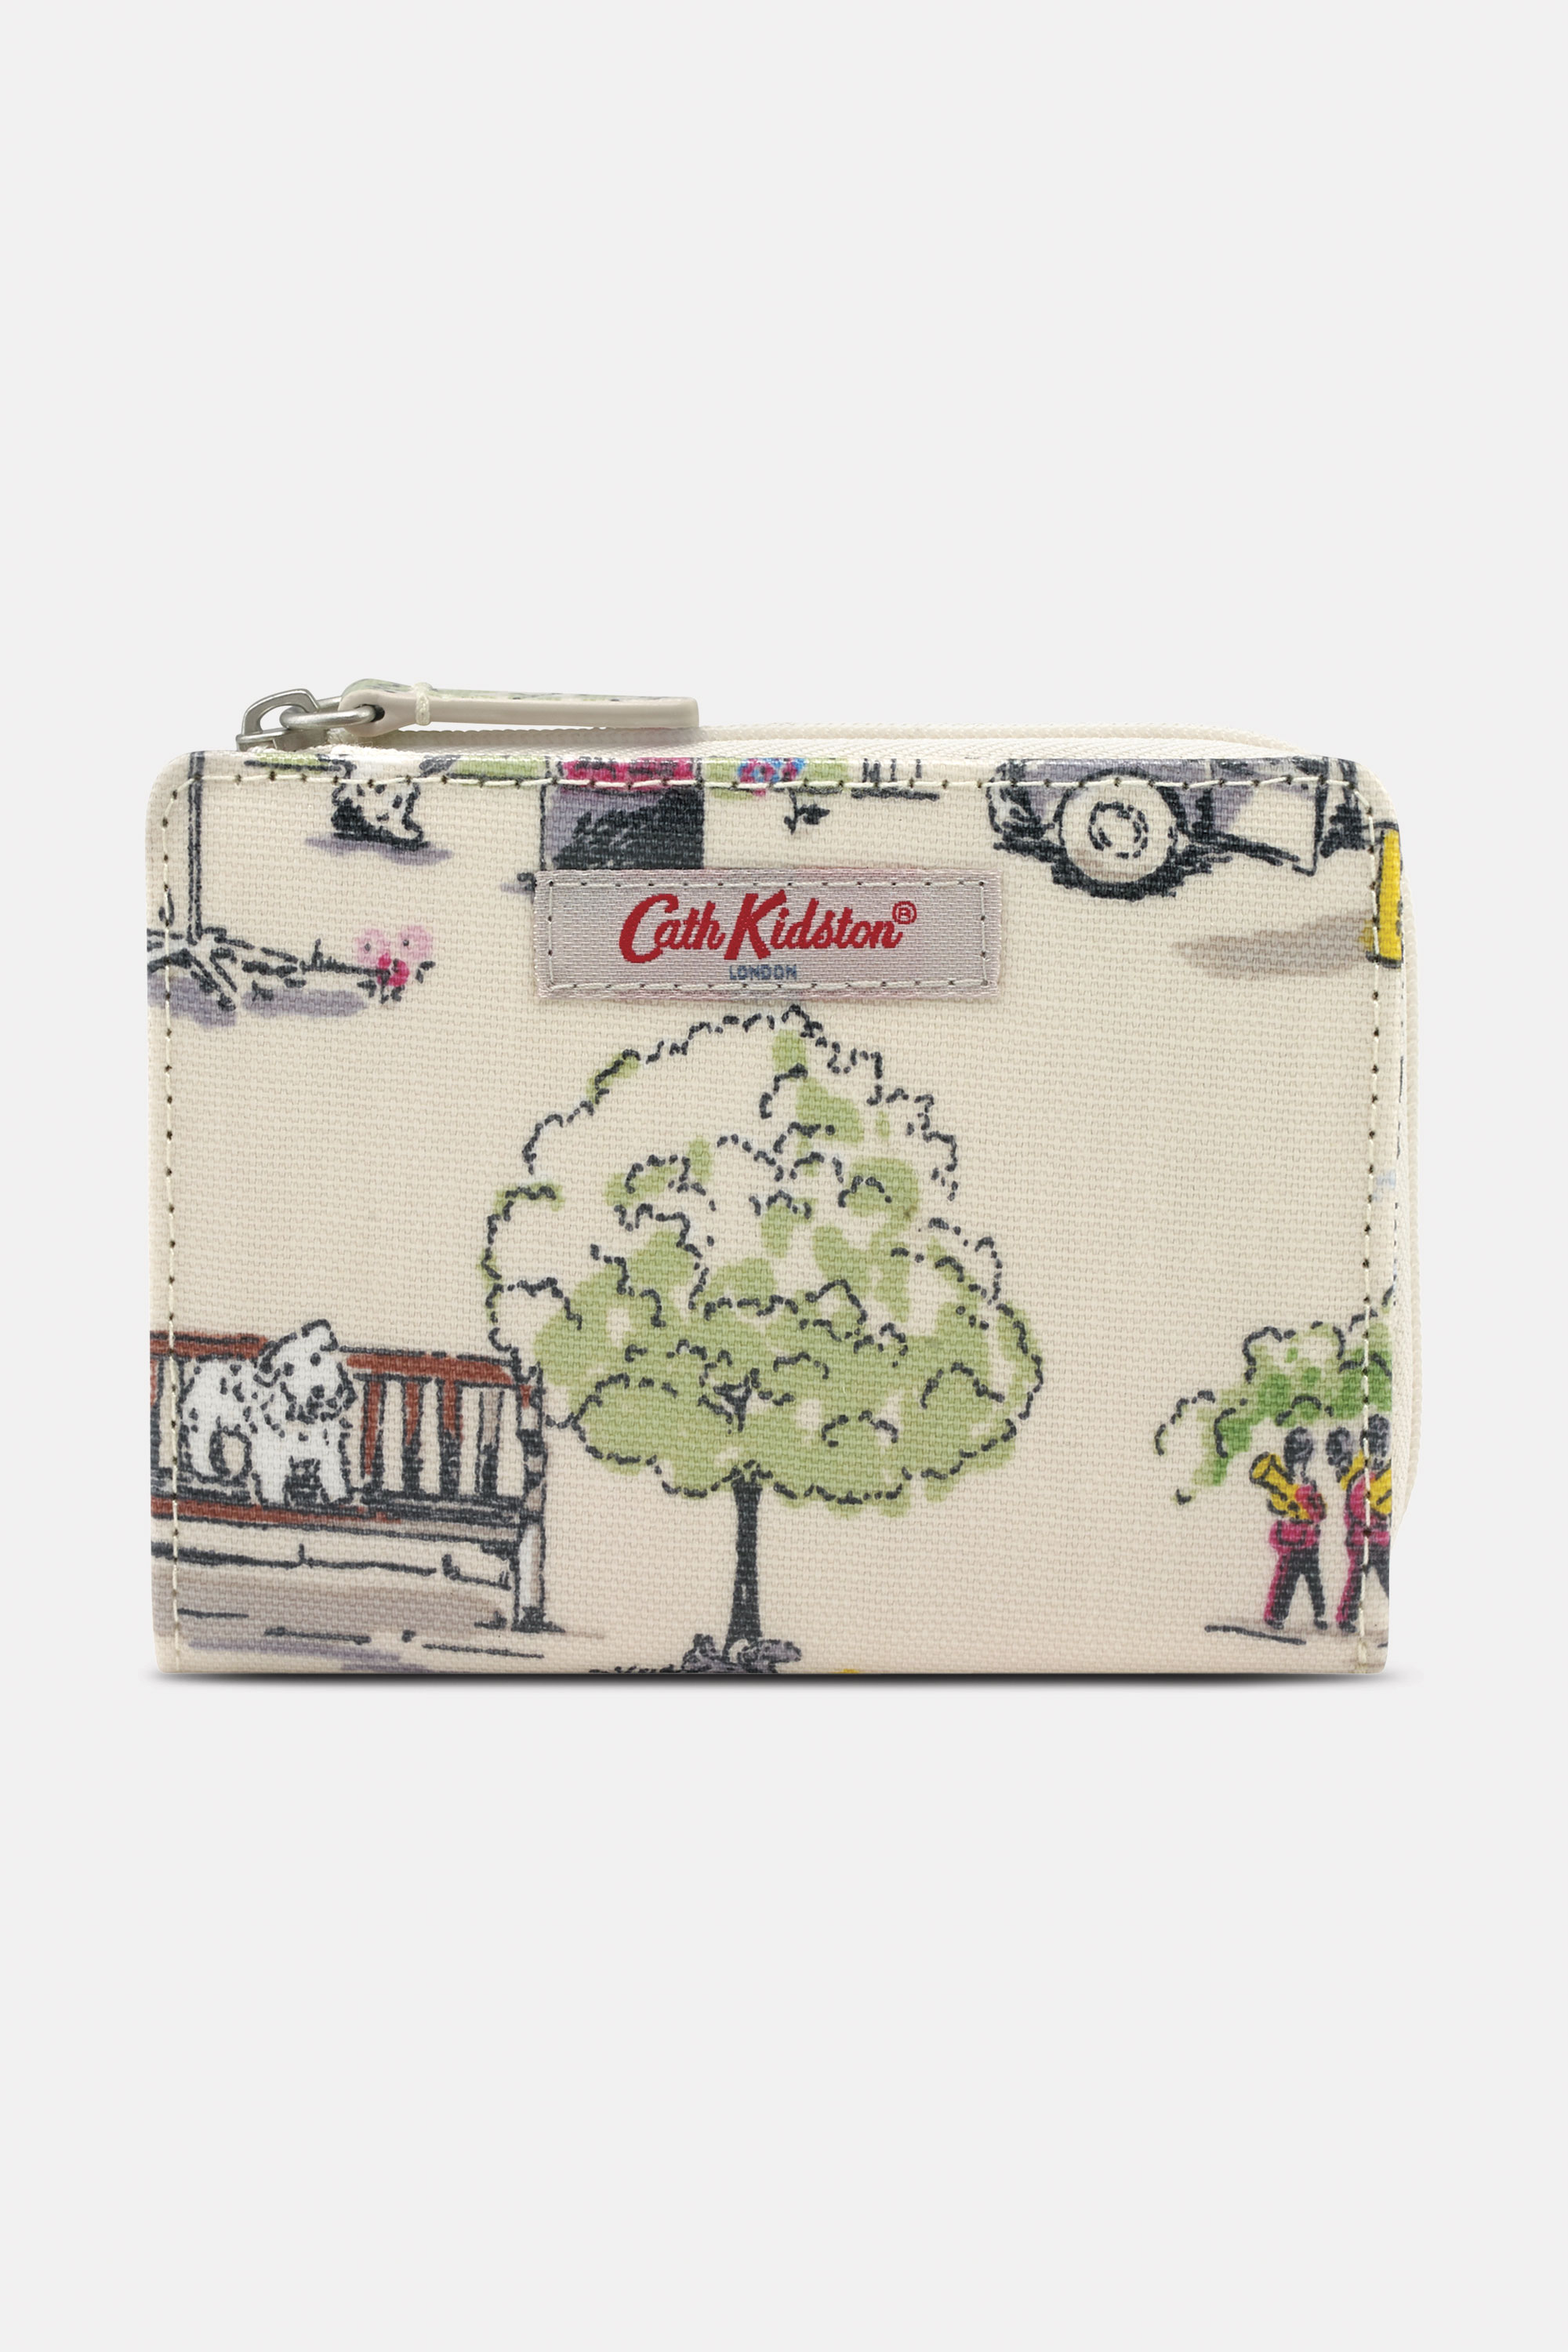 Cath Kidston Billie Goes to Town Slim Pocket Purse in Ivory, 100% PVC Coated Cotton